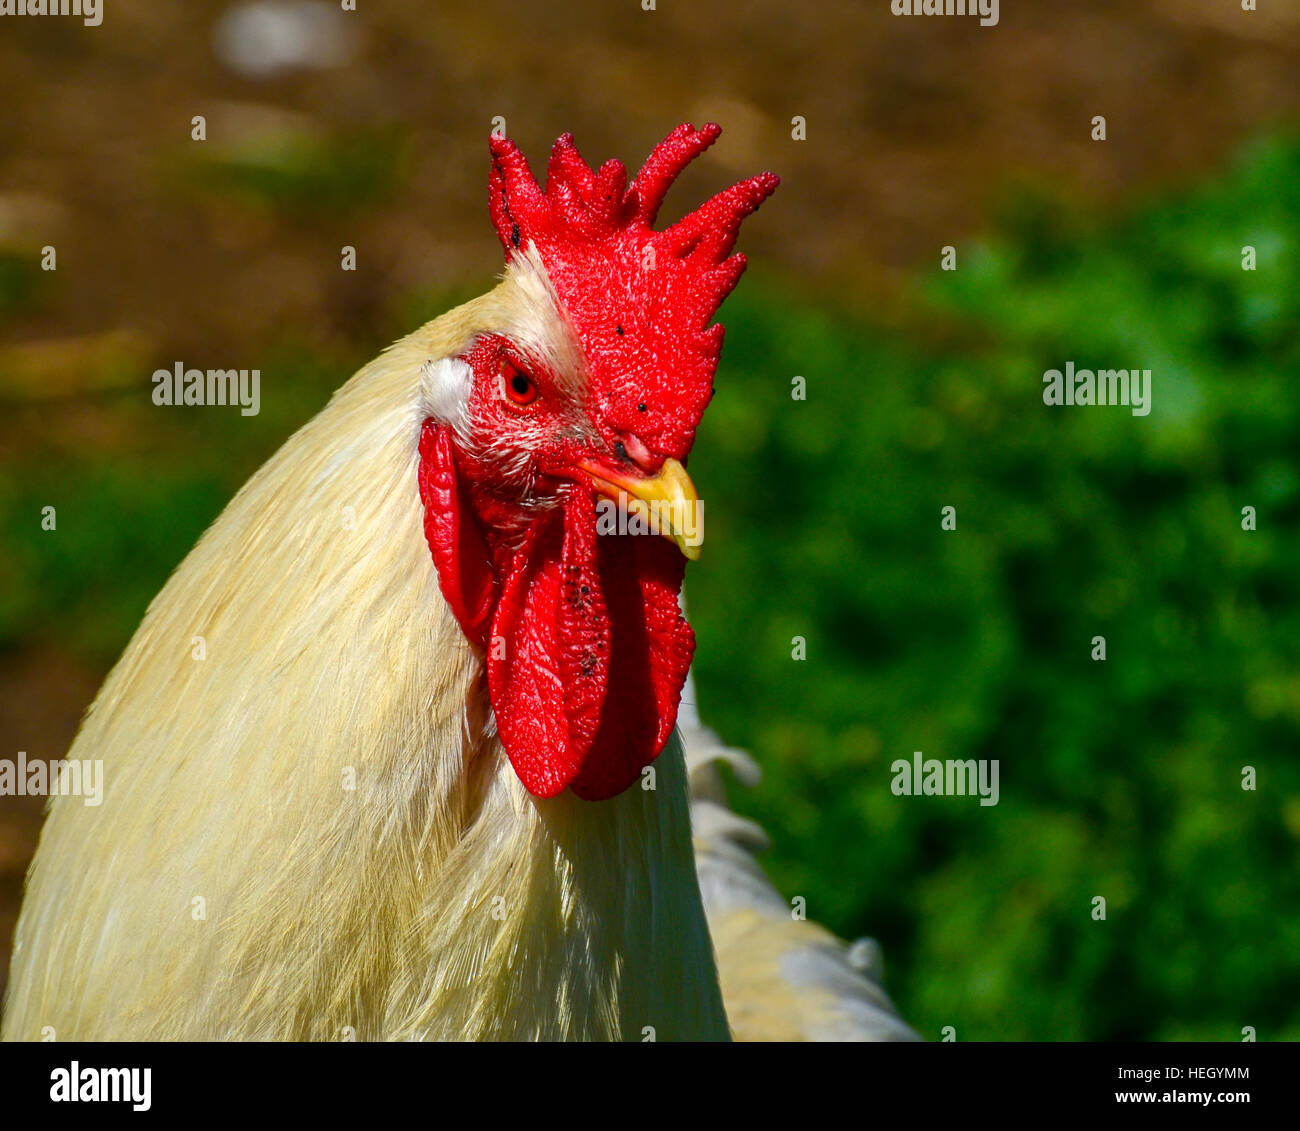 The rooster on the chicken farm. - Stock Image